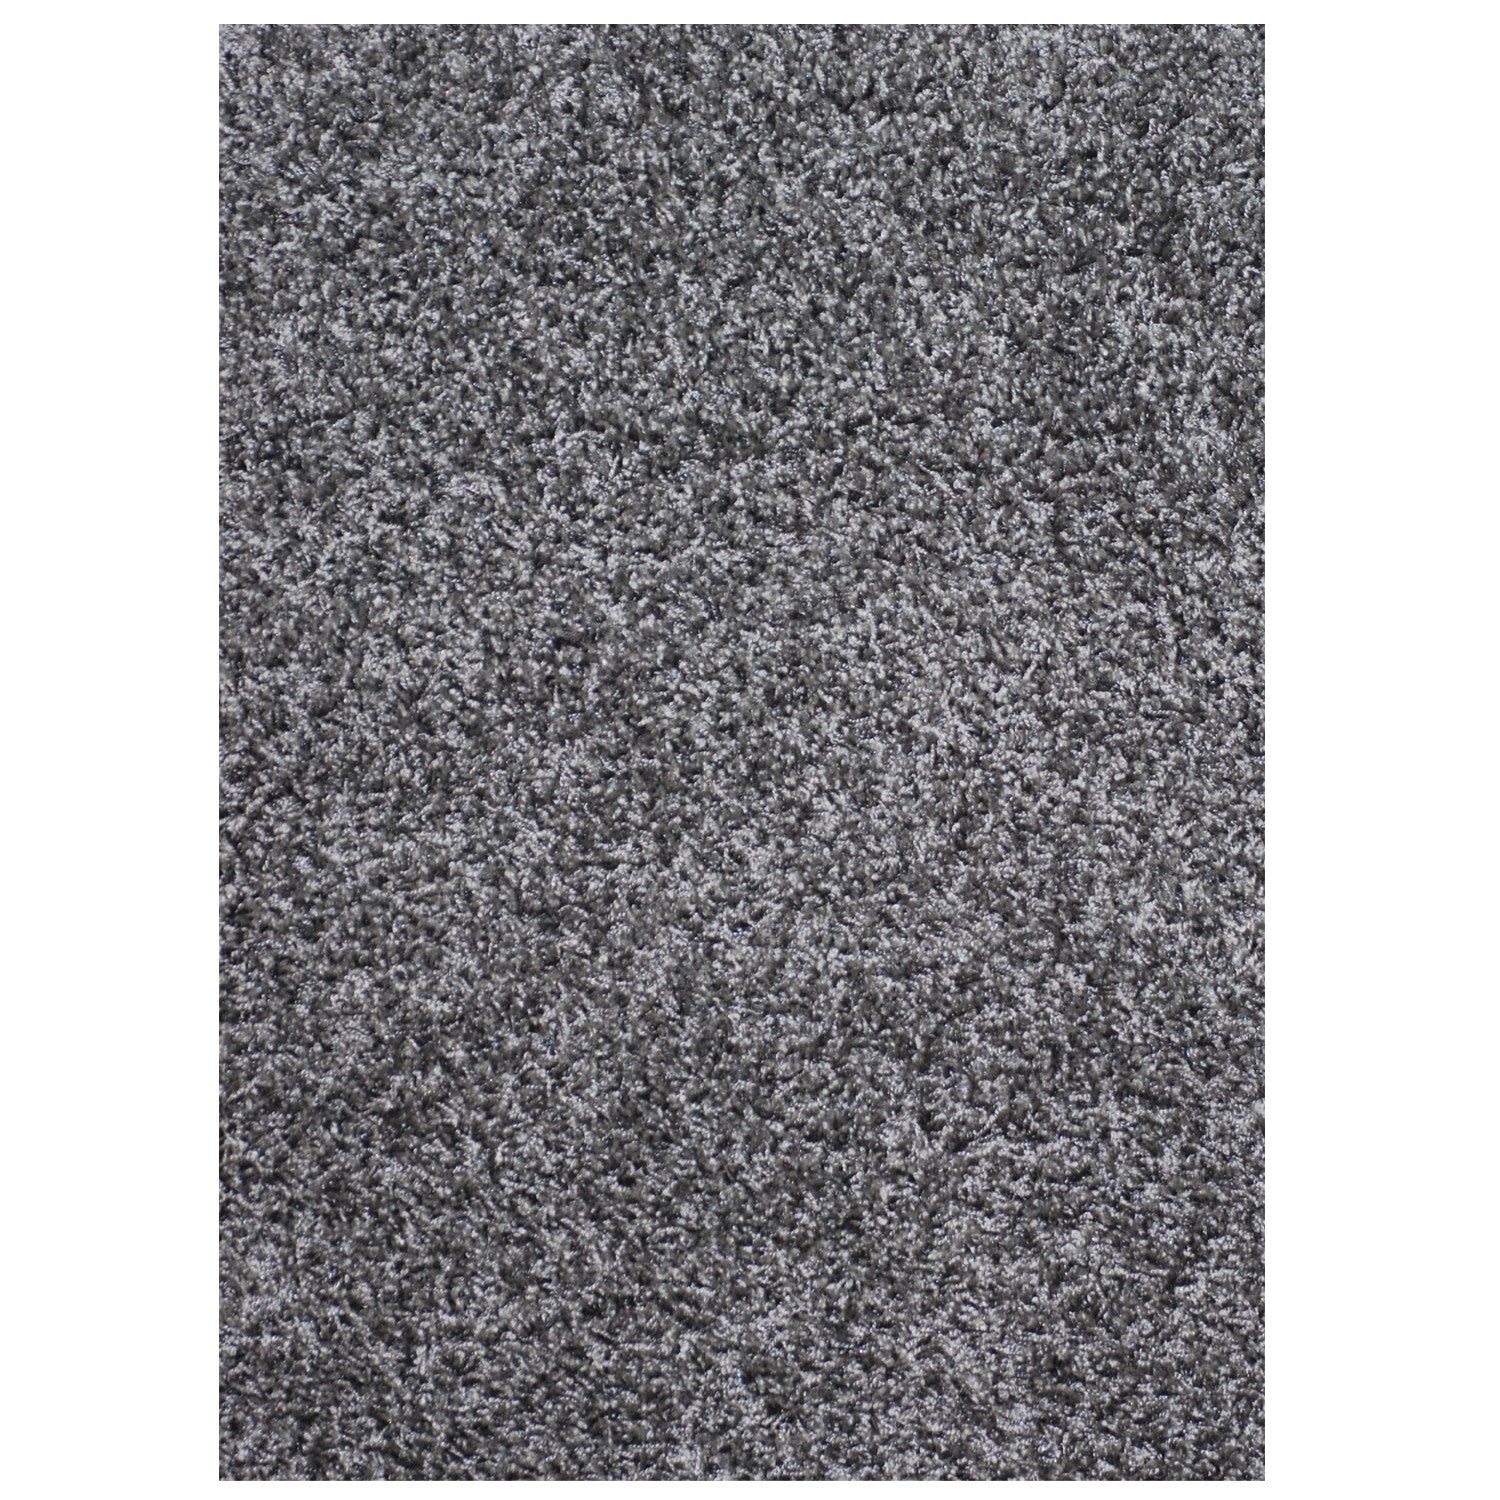 Mayberry Super Shag SUPS1384-Cloud Smoke Gray Area Rug